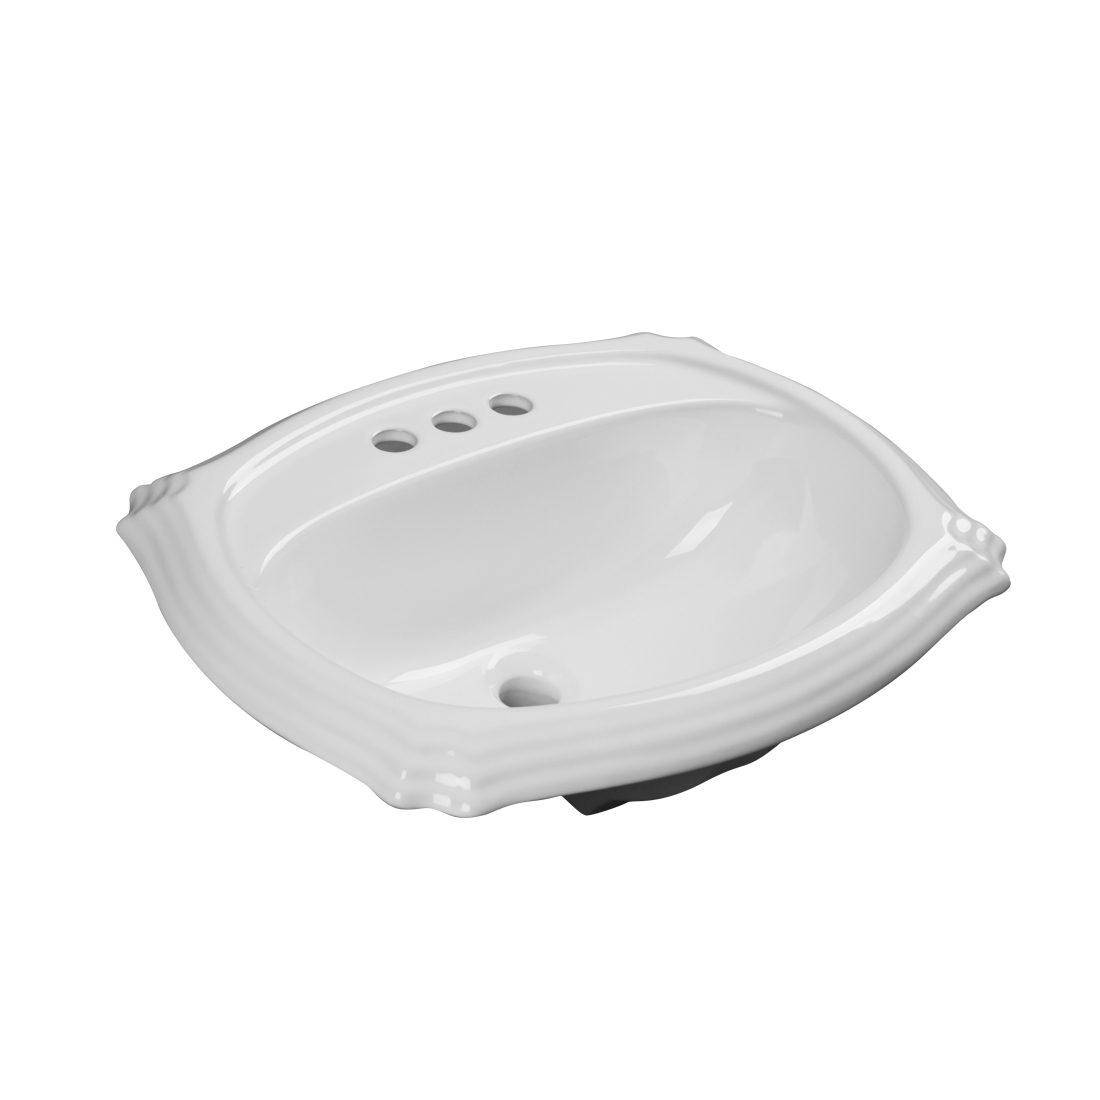 Anchorage Lavatory 3Hole 4inch White Front View